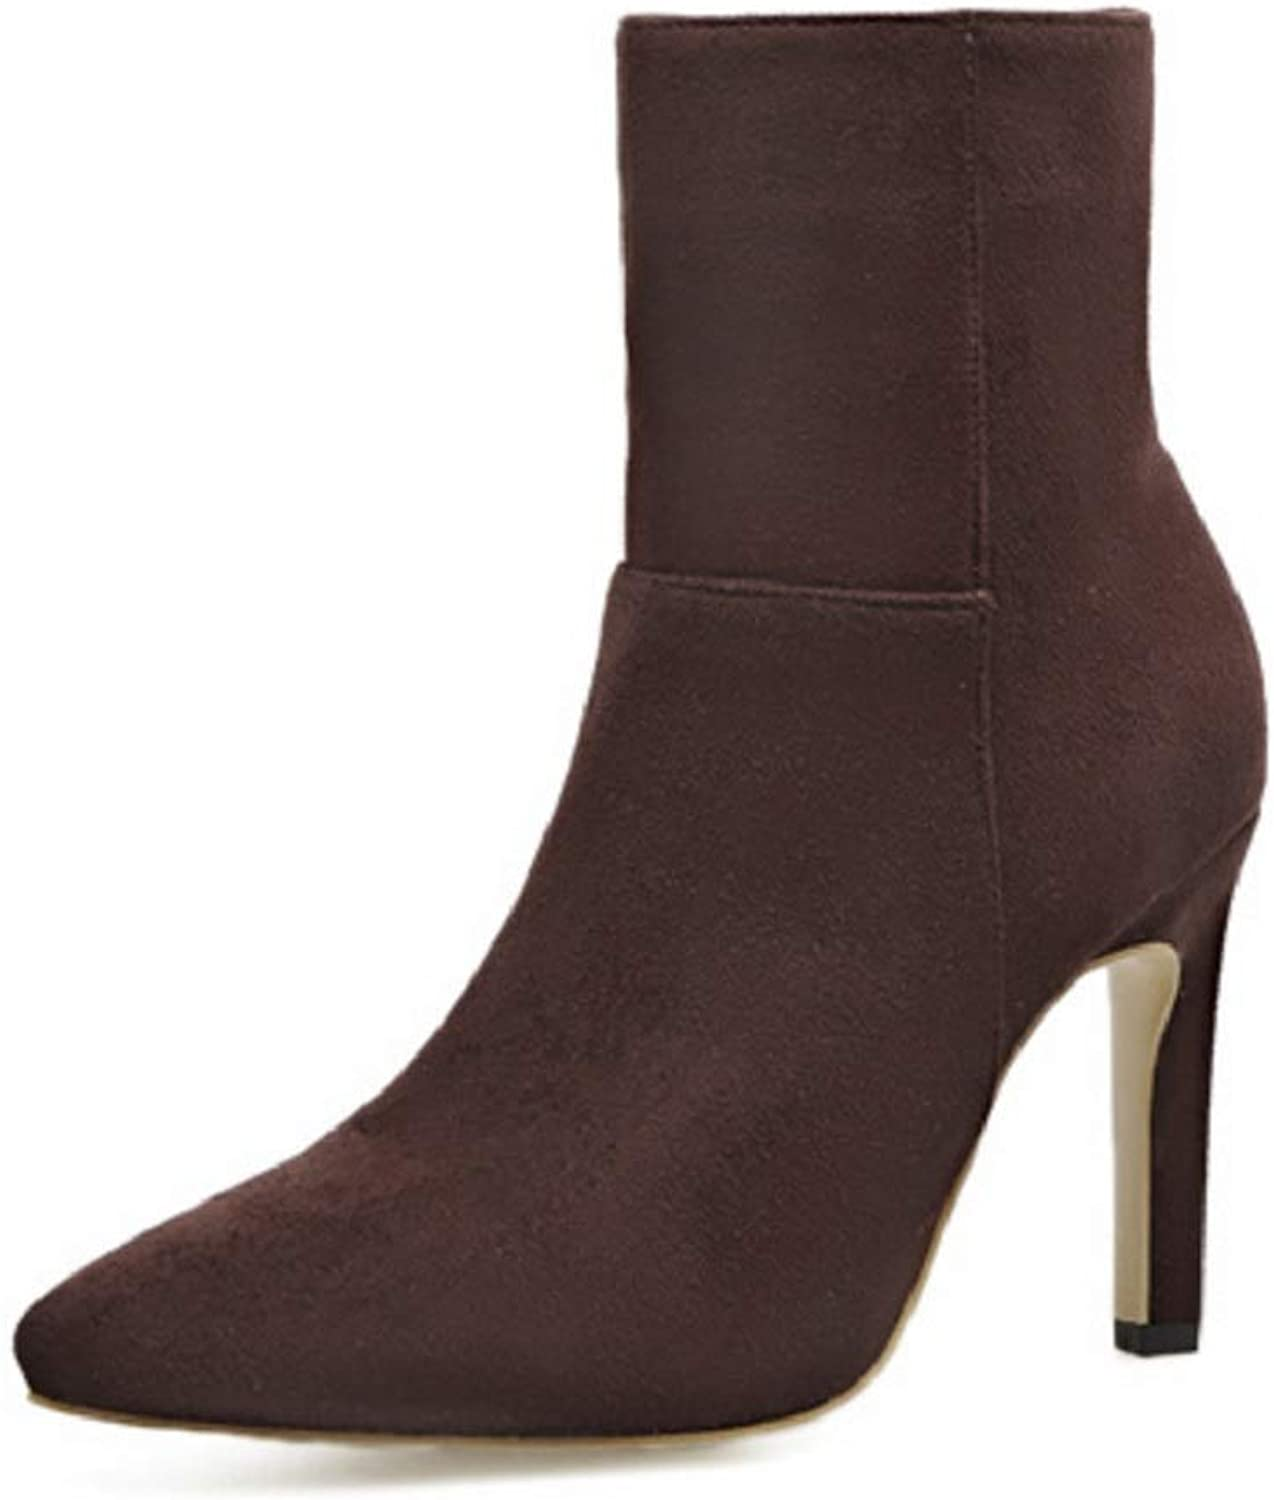 Ladies Women High Heels Ankle Boots  2018 Autumn and Winter New European and American Suede Small Pepper Pointed Head with Ankle Boots